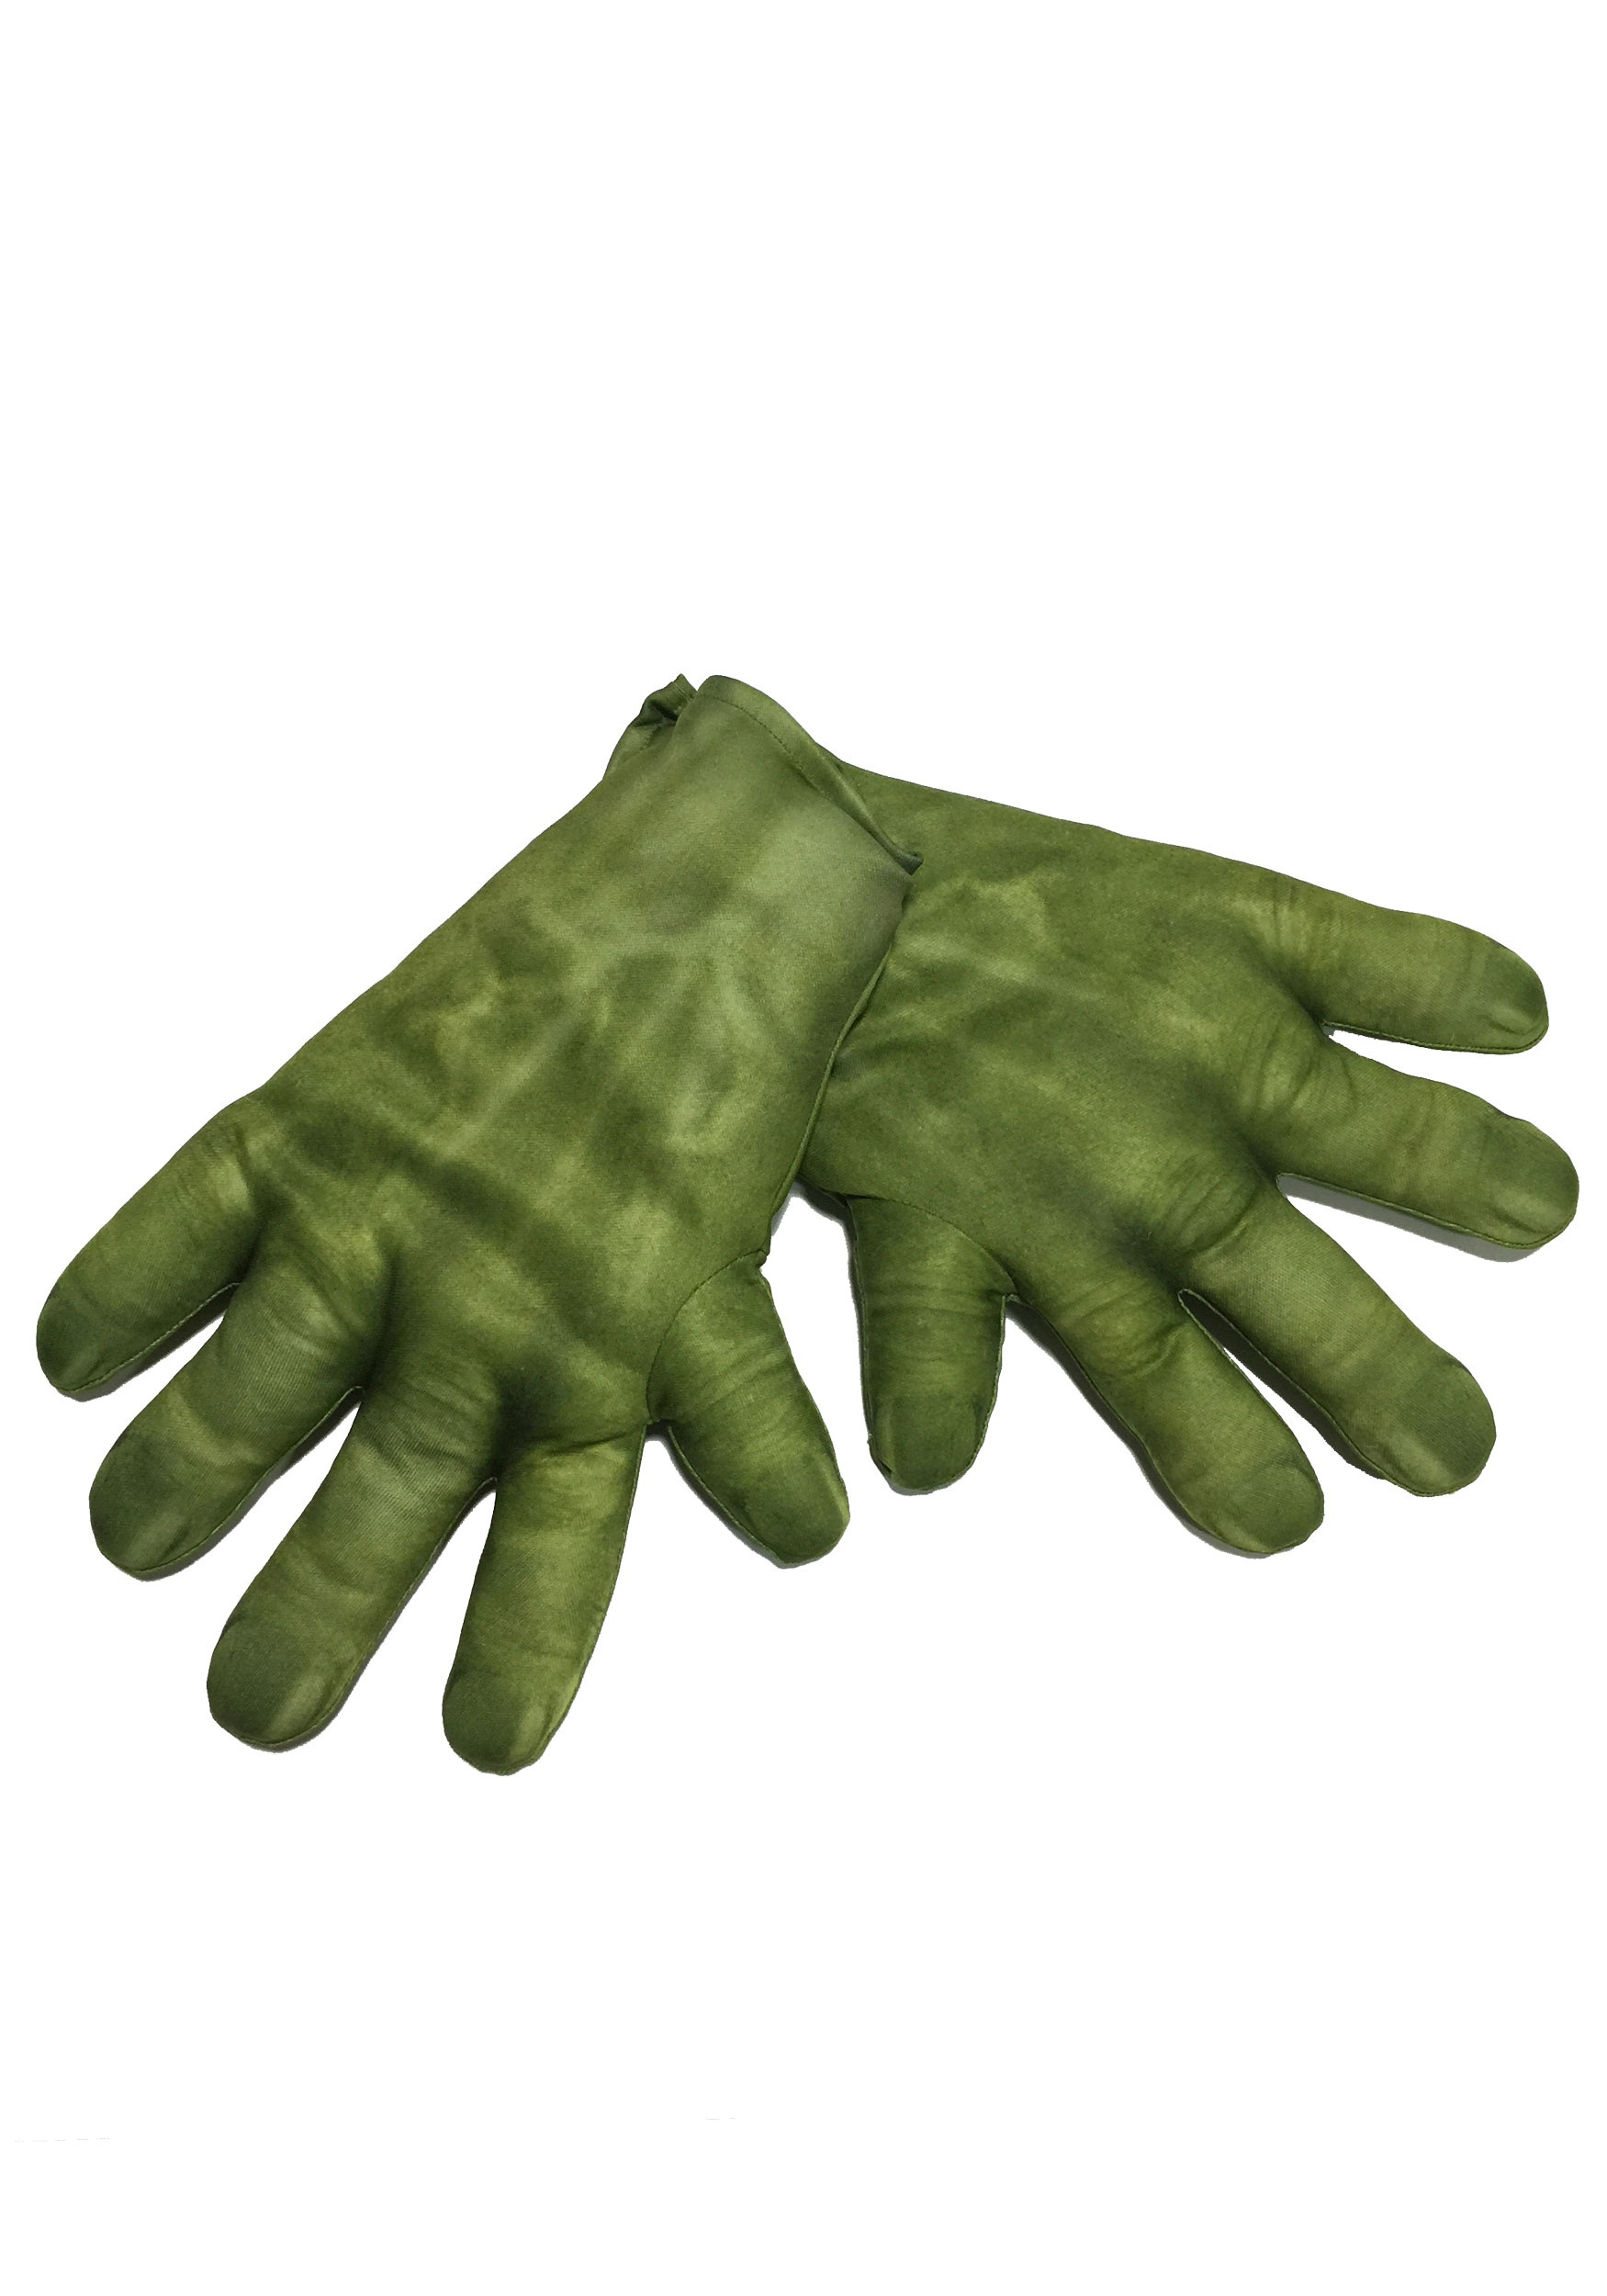 Adult Hulk Avengers 2 Gloves